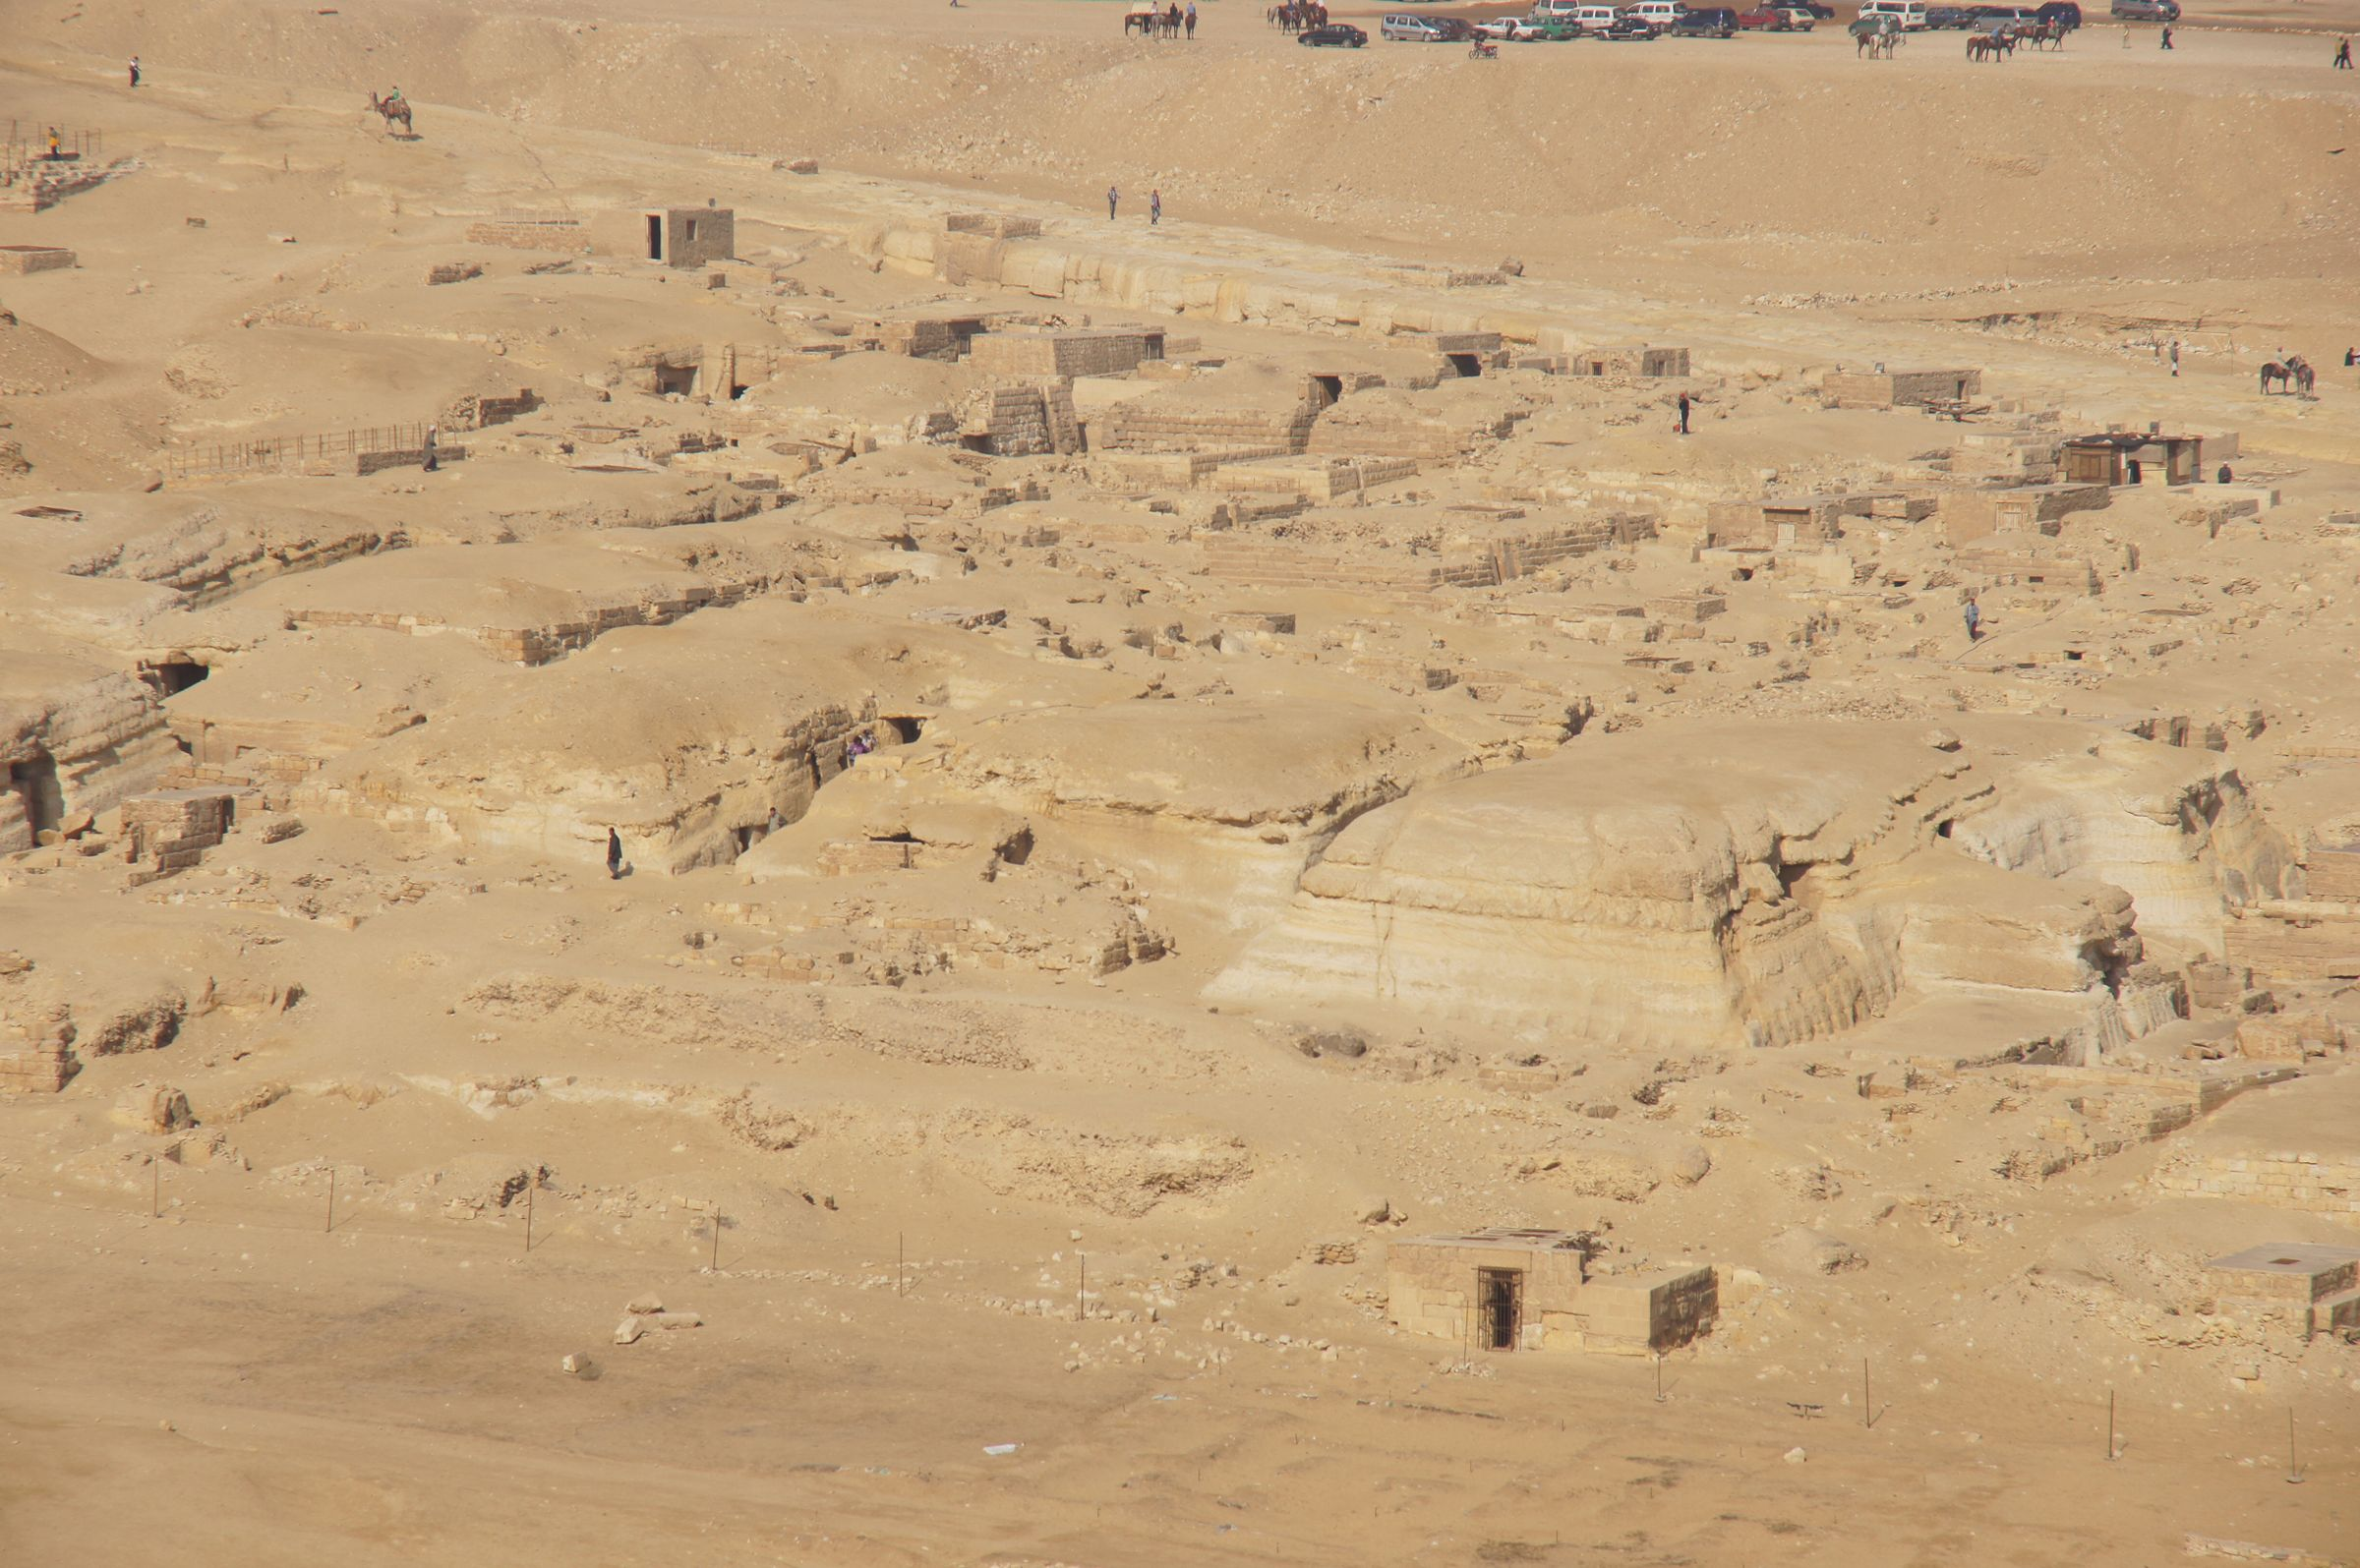 Central Field (Hassan): Site: Giza; View: G 8422, G 8424, G 8658, G 8664, G 8668, G 8656, G 8660, G 8654, G 8655, G 8670, G 8672, G 8702, G 8704, G 8708, G 8712, G 8710, G 8718, G 8716, G 8721, G 8722, G 8720, G 8725, G 8730, G 8732, G 8728, G 8729, G 8861, G 873